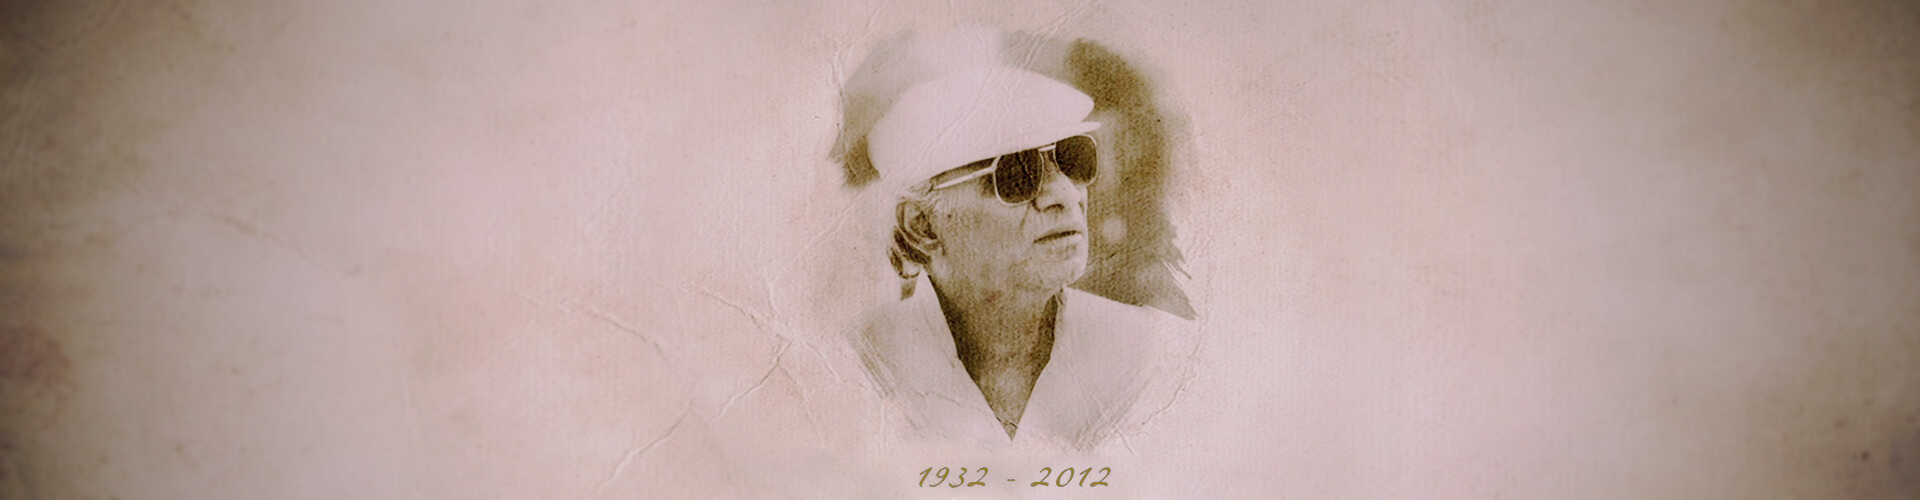 Yash Chopra - The Legend